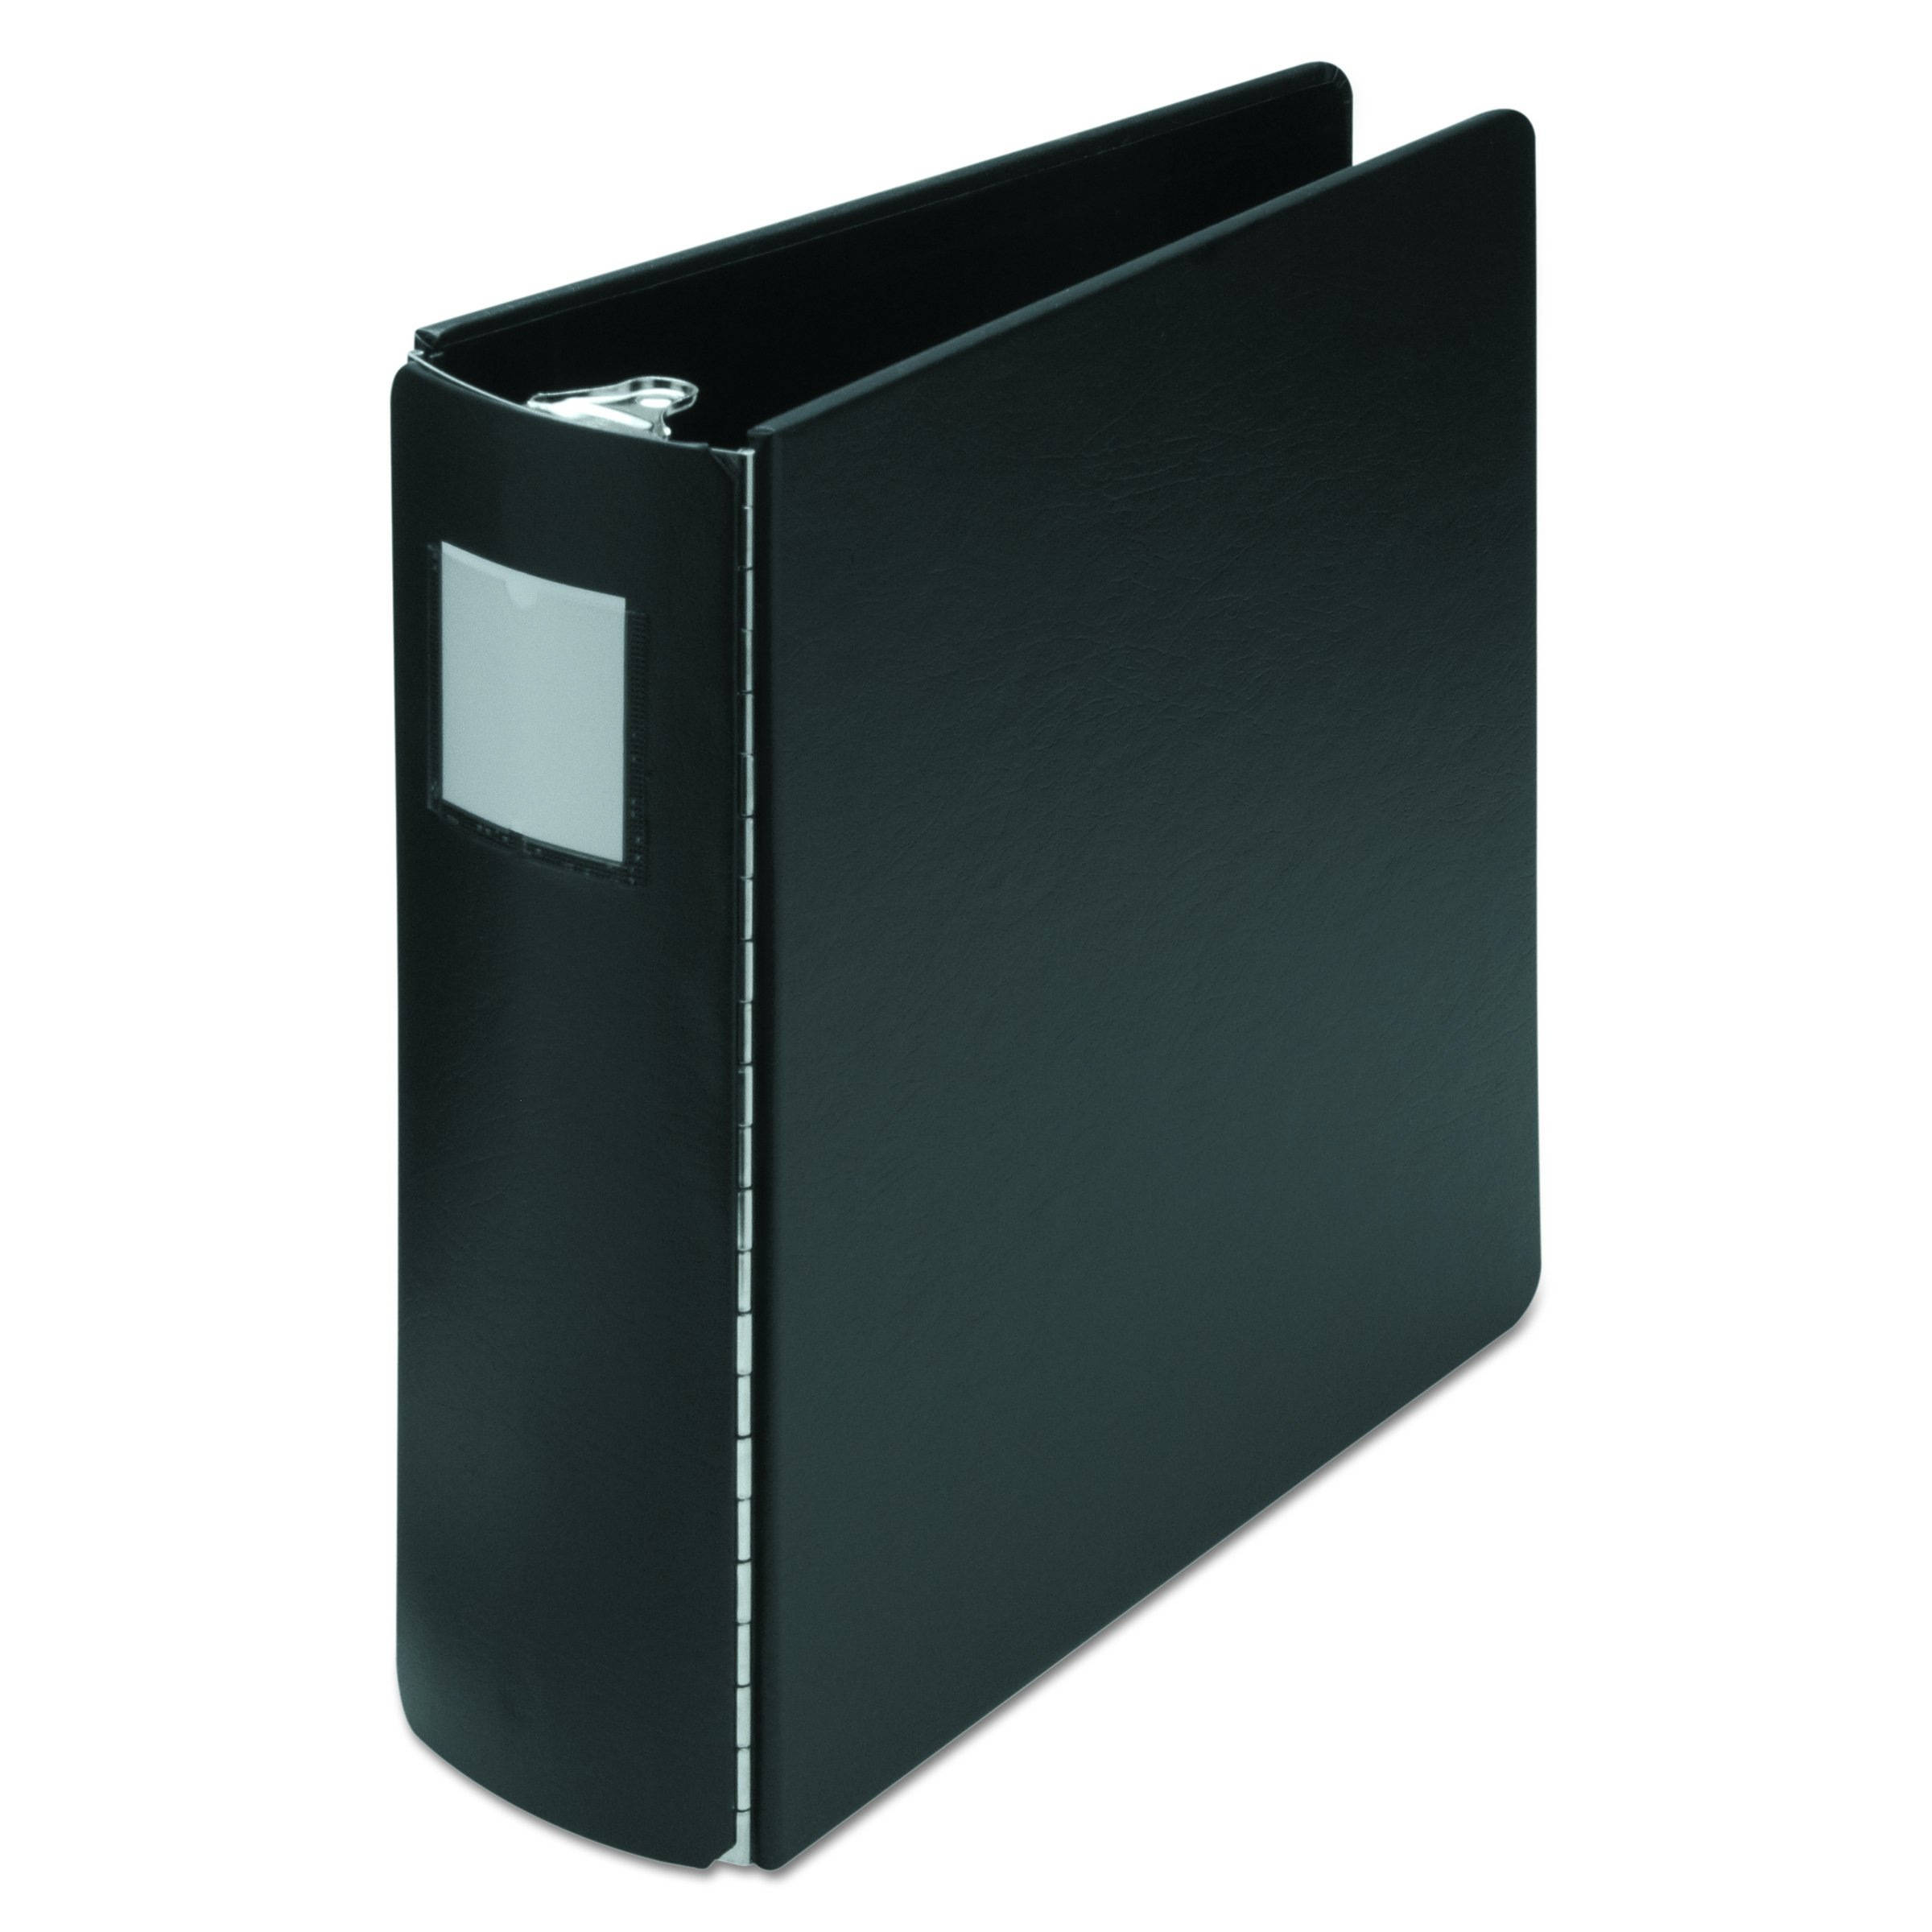 Wilson Jones 344 Line Casebound 3-Ring Binder with DublLock Rings, 3'' Capacity, 8.5'' x 11'' Sheet Size, Black (W344-49NLH) by Wilson Jones